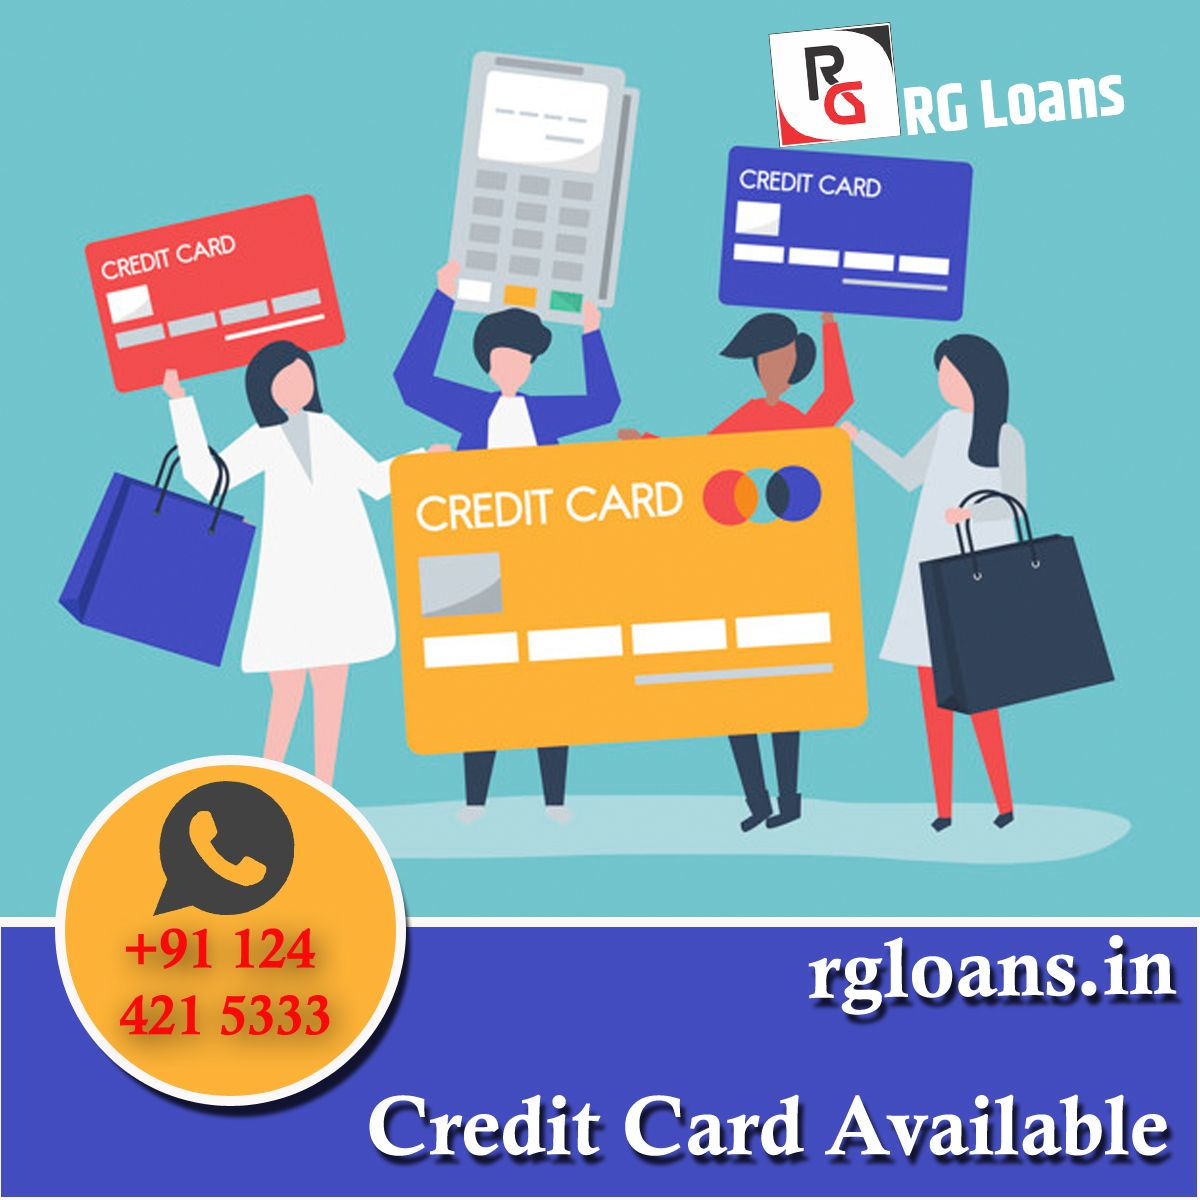 Credit Cards Available Insurance Investments Types Of Credit Cards Credit Card